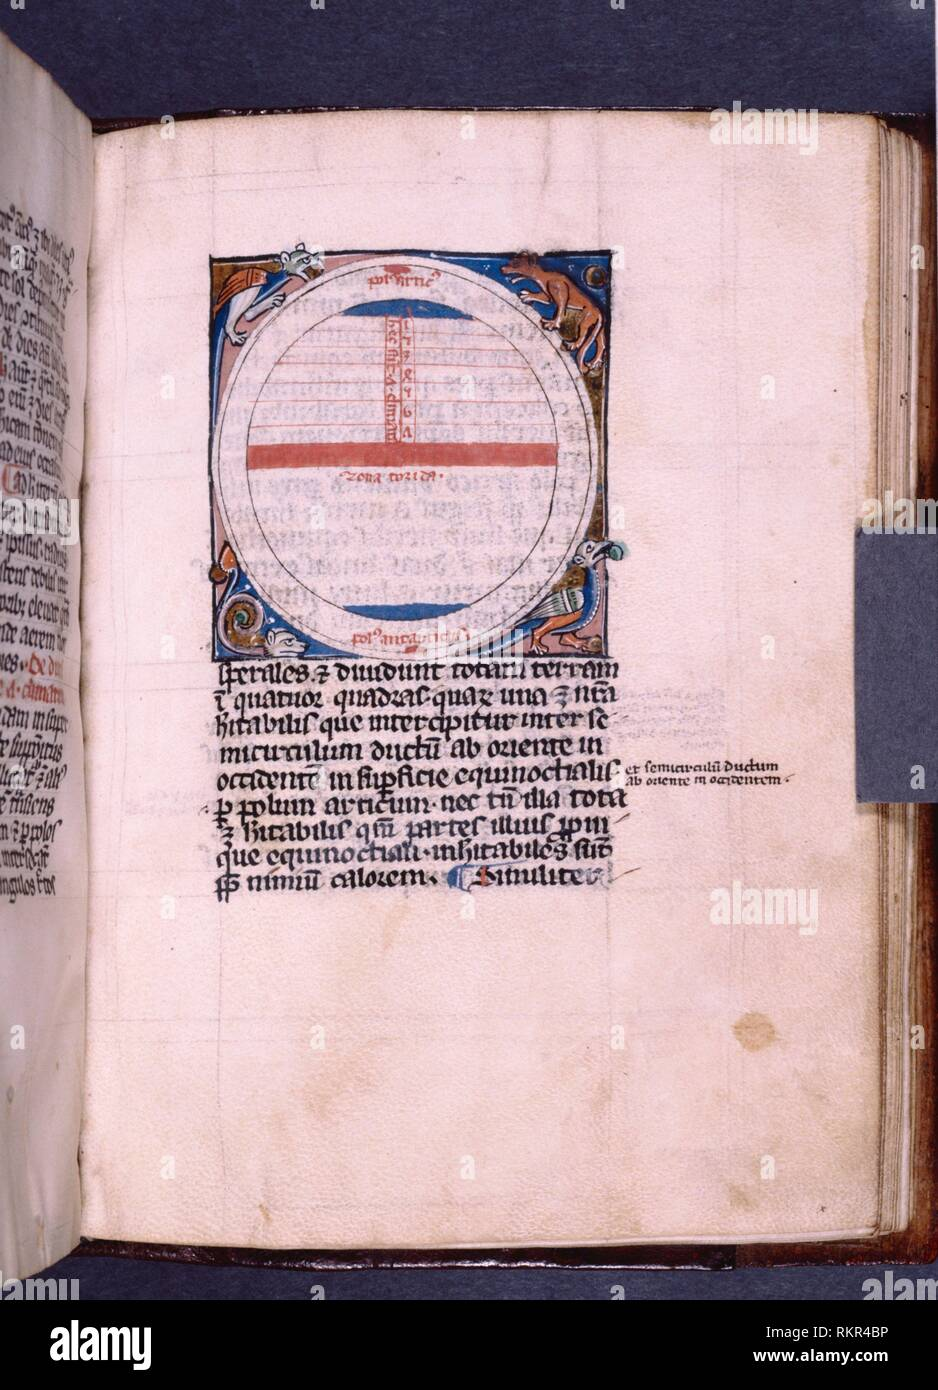 Chart of the seven climatic zones, with the torrid zone in the center and the poles at the extremes. Sacro Bosco, Joannes de (fl. 1230) (Author). - Stock Image